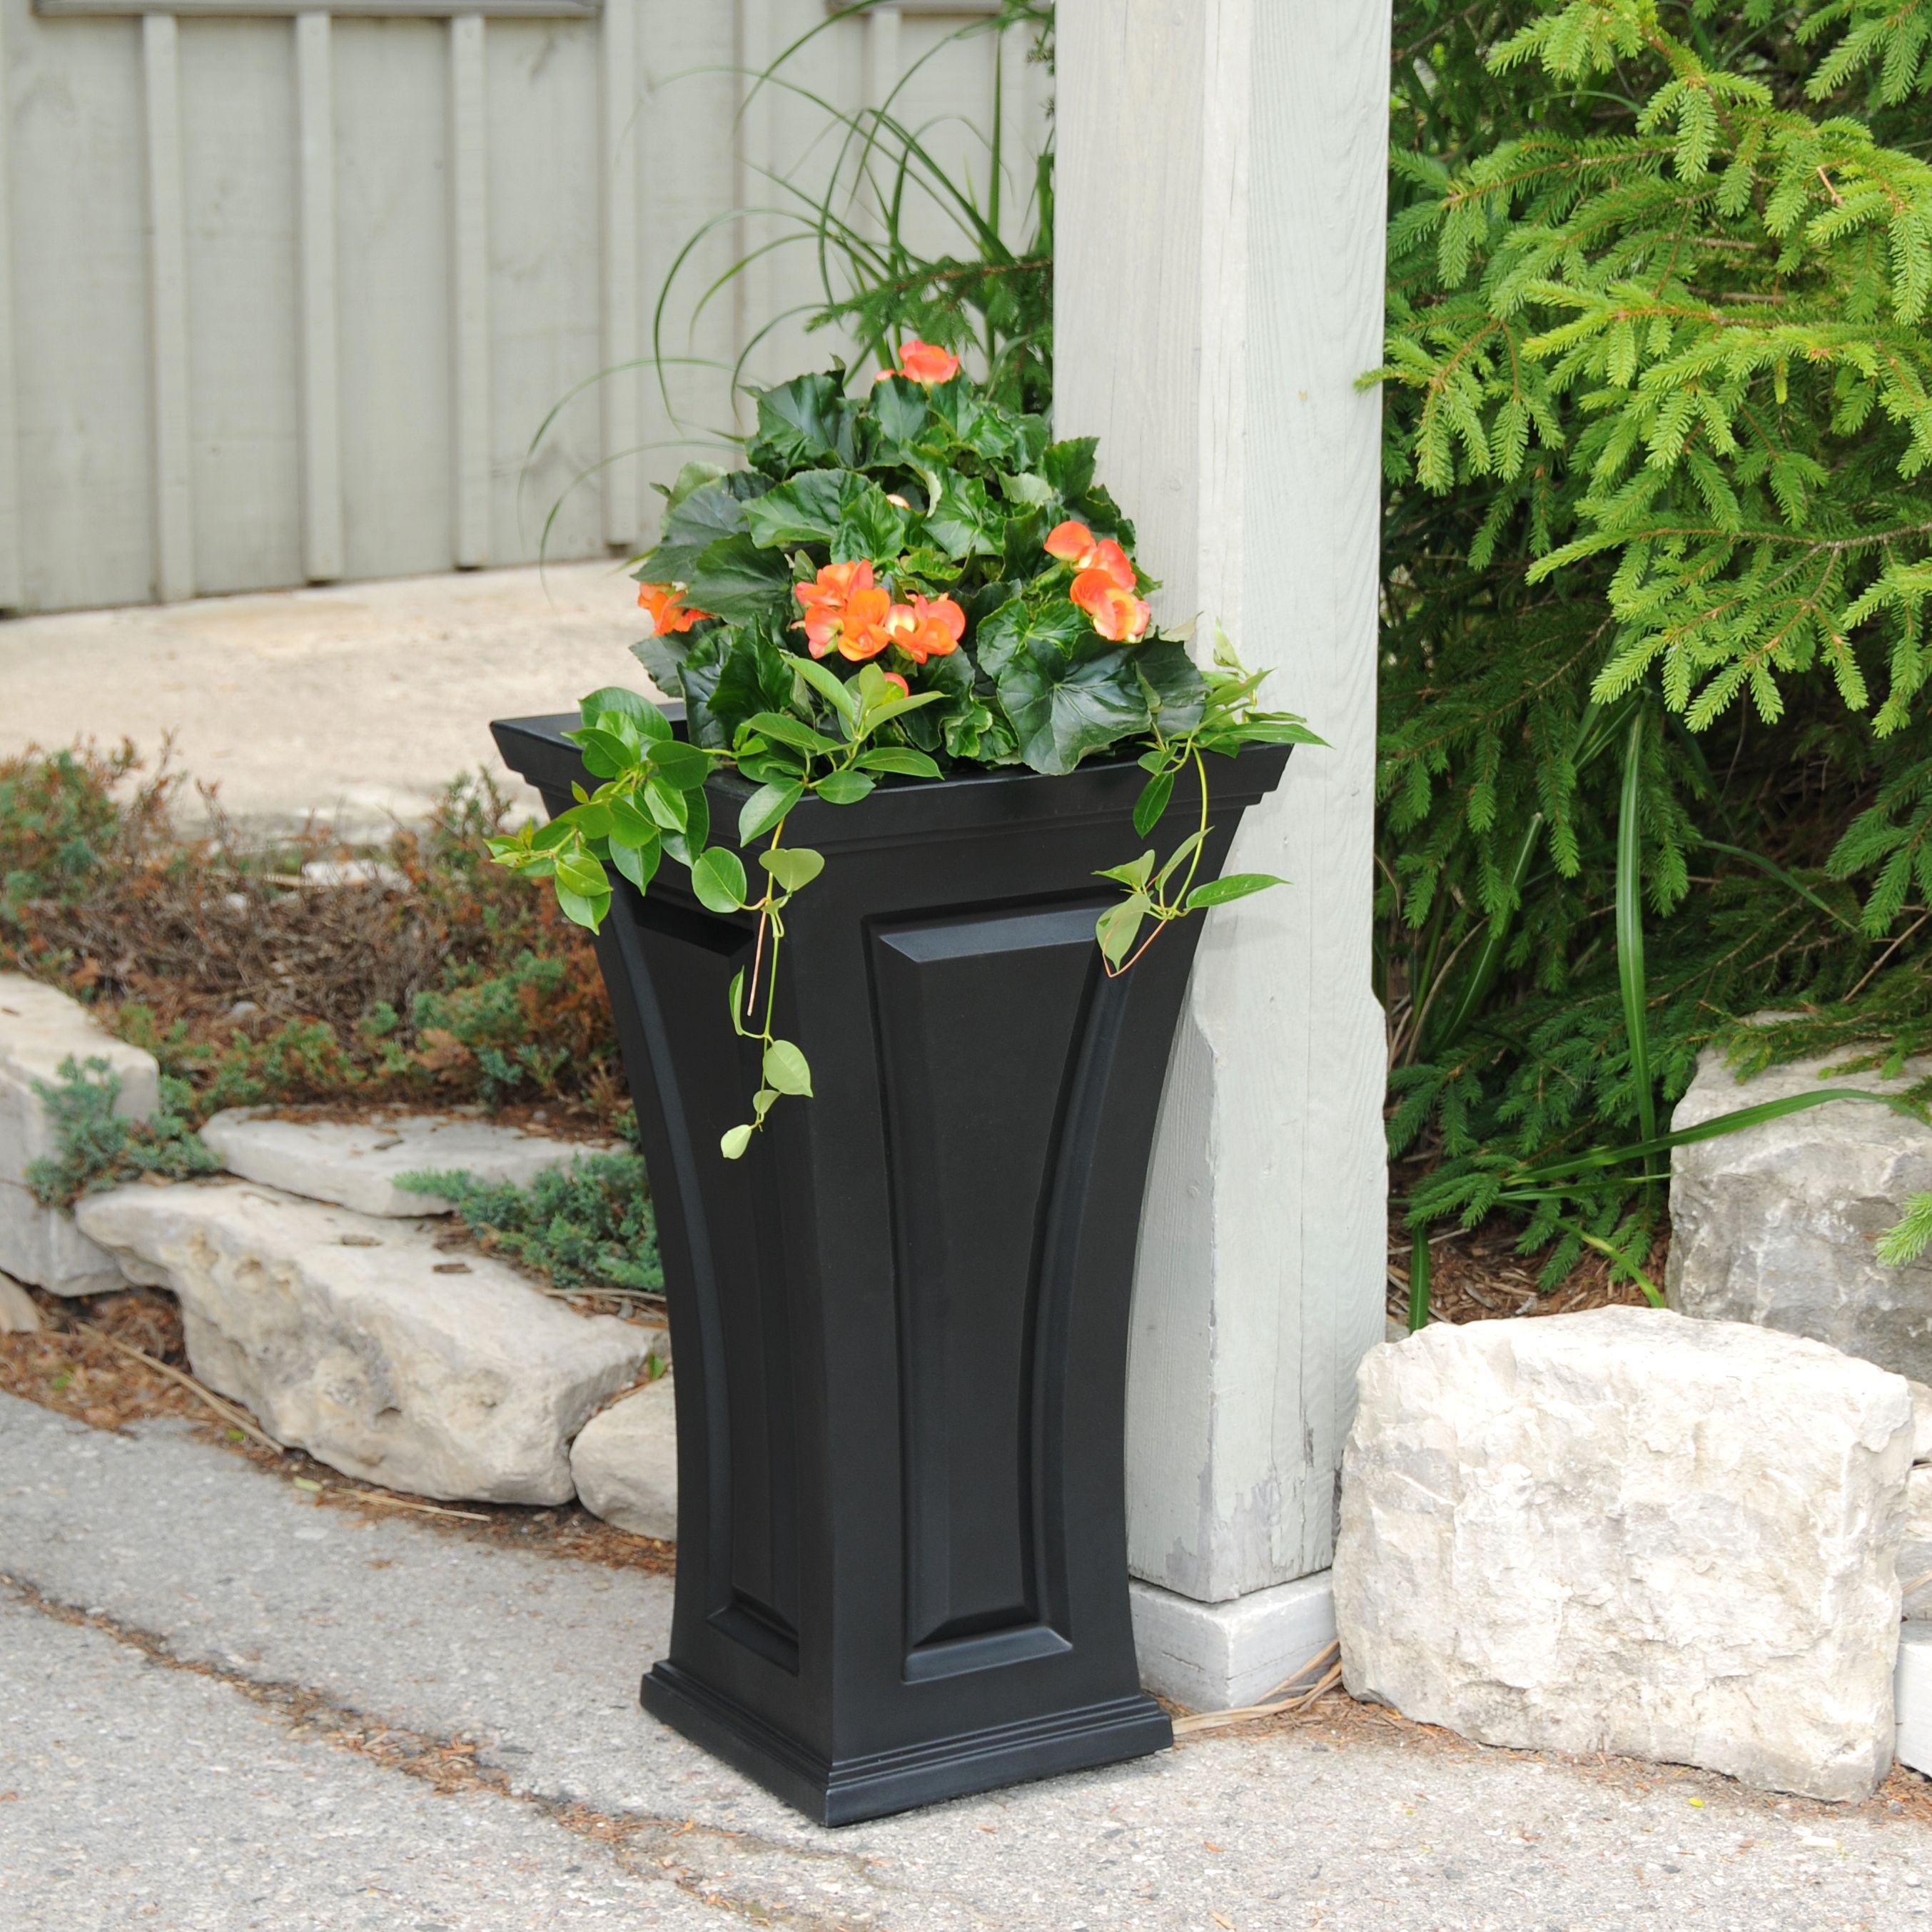 Cambridge Tall Planter Black by Garden Planters